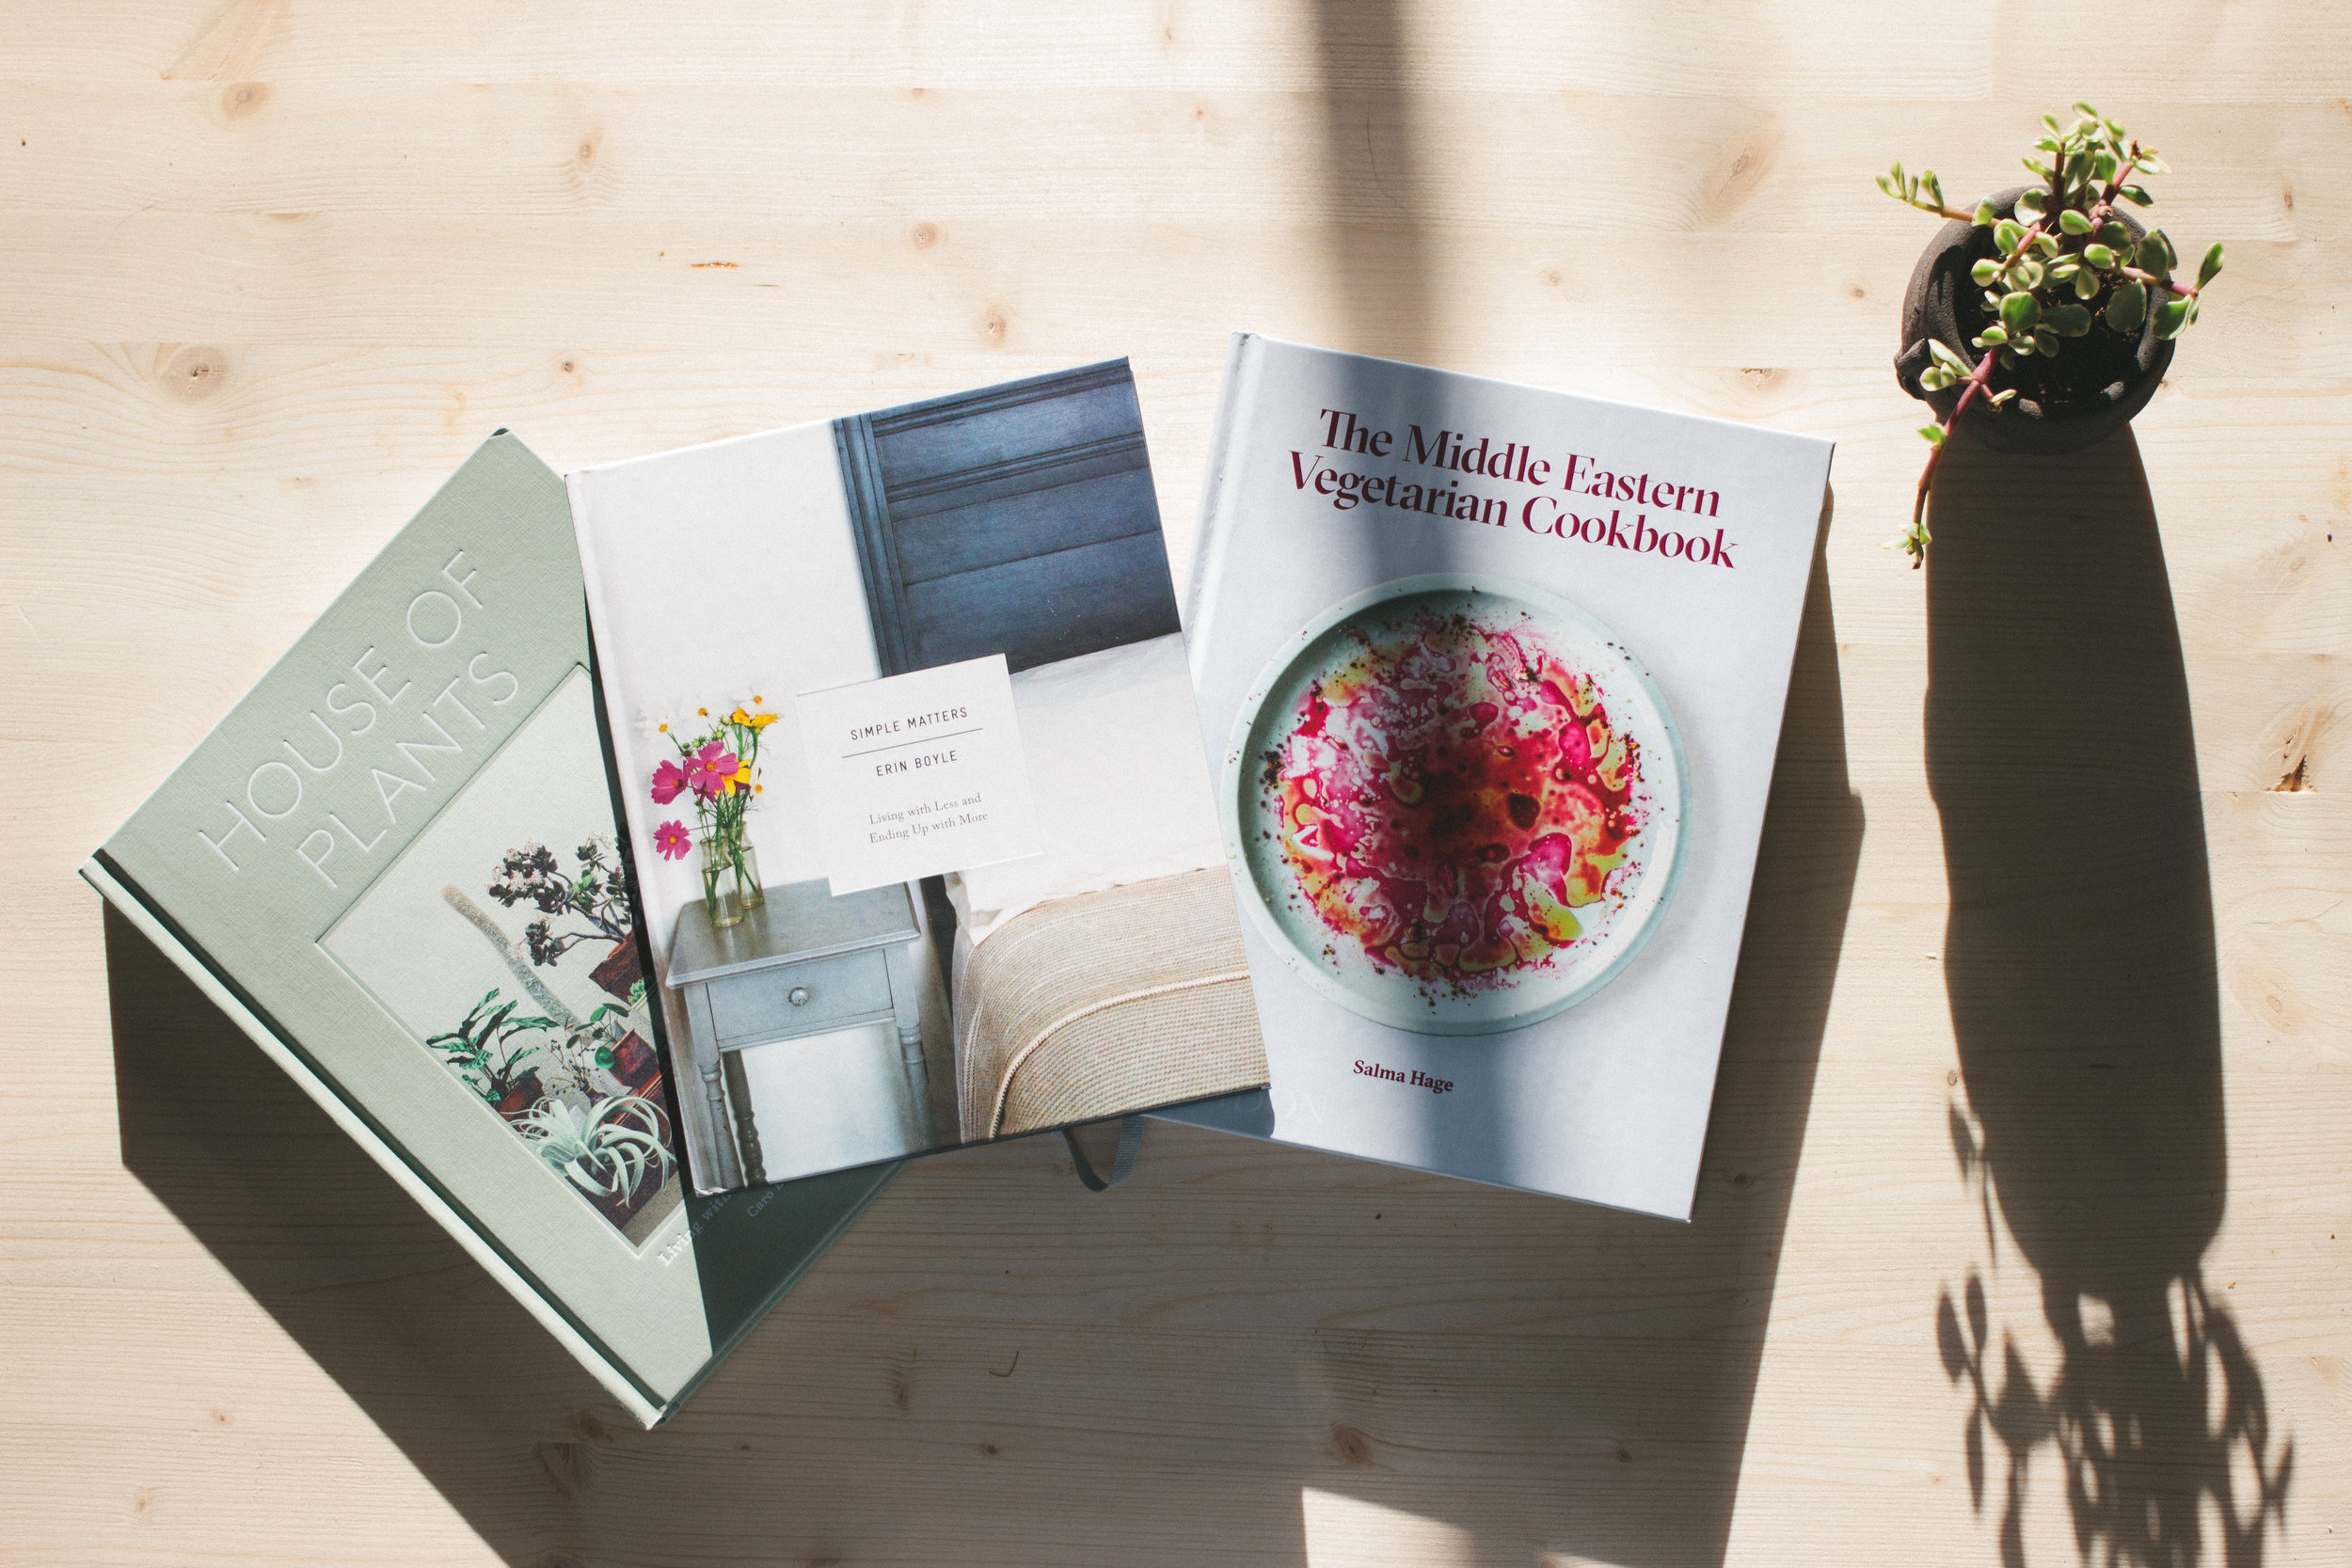 Left to Right: House of Plants, Simple Matters, The Middle Easter Vegetarian Cookbook, Alice Frost planter